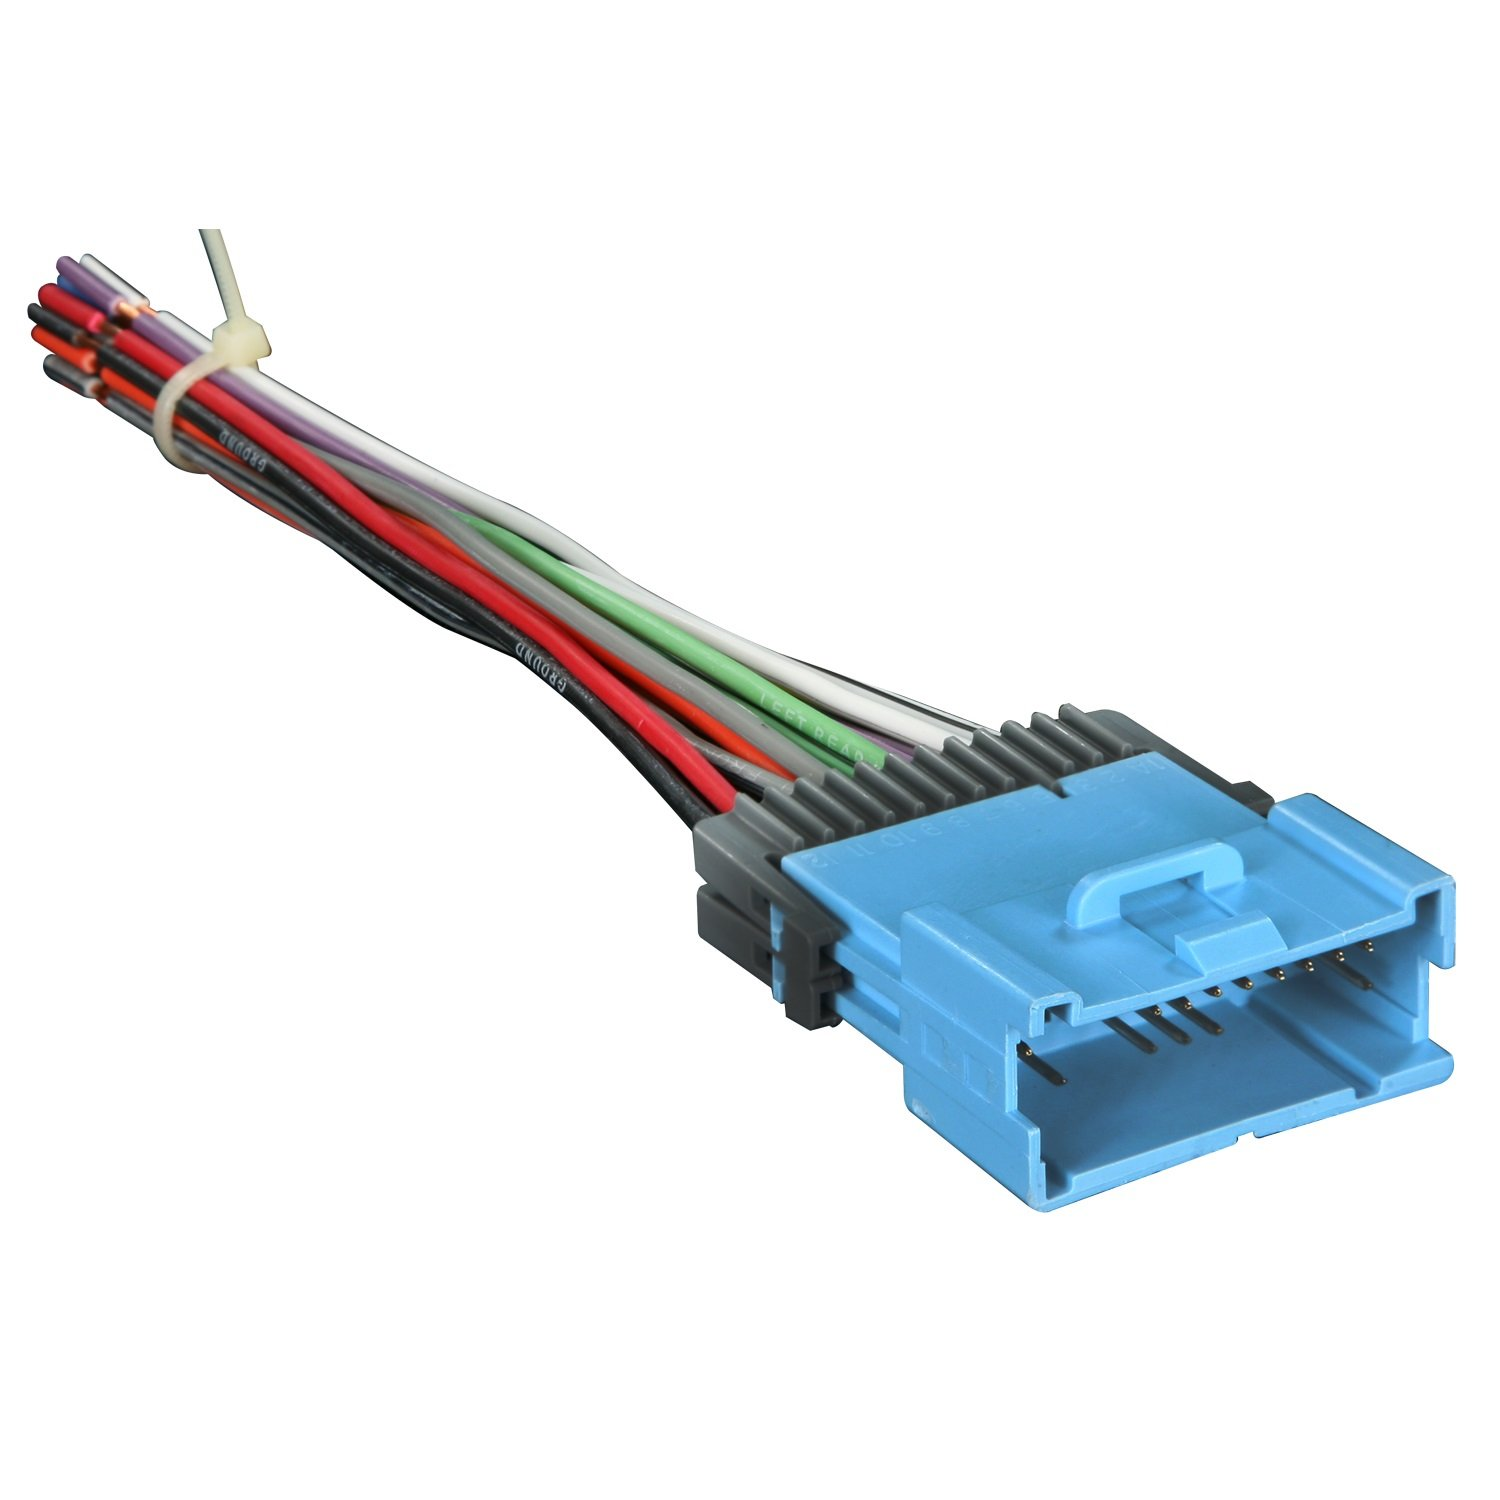 61ruWw 2aJL._SL1500_ amazon com metra 70 2102 radio wiring harness for gm 04 05 car GM Wiring Color Codes at mifinder.co